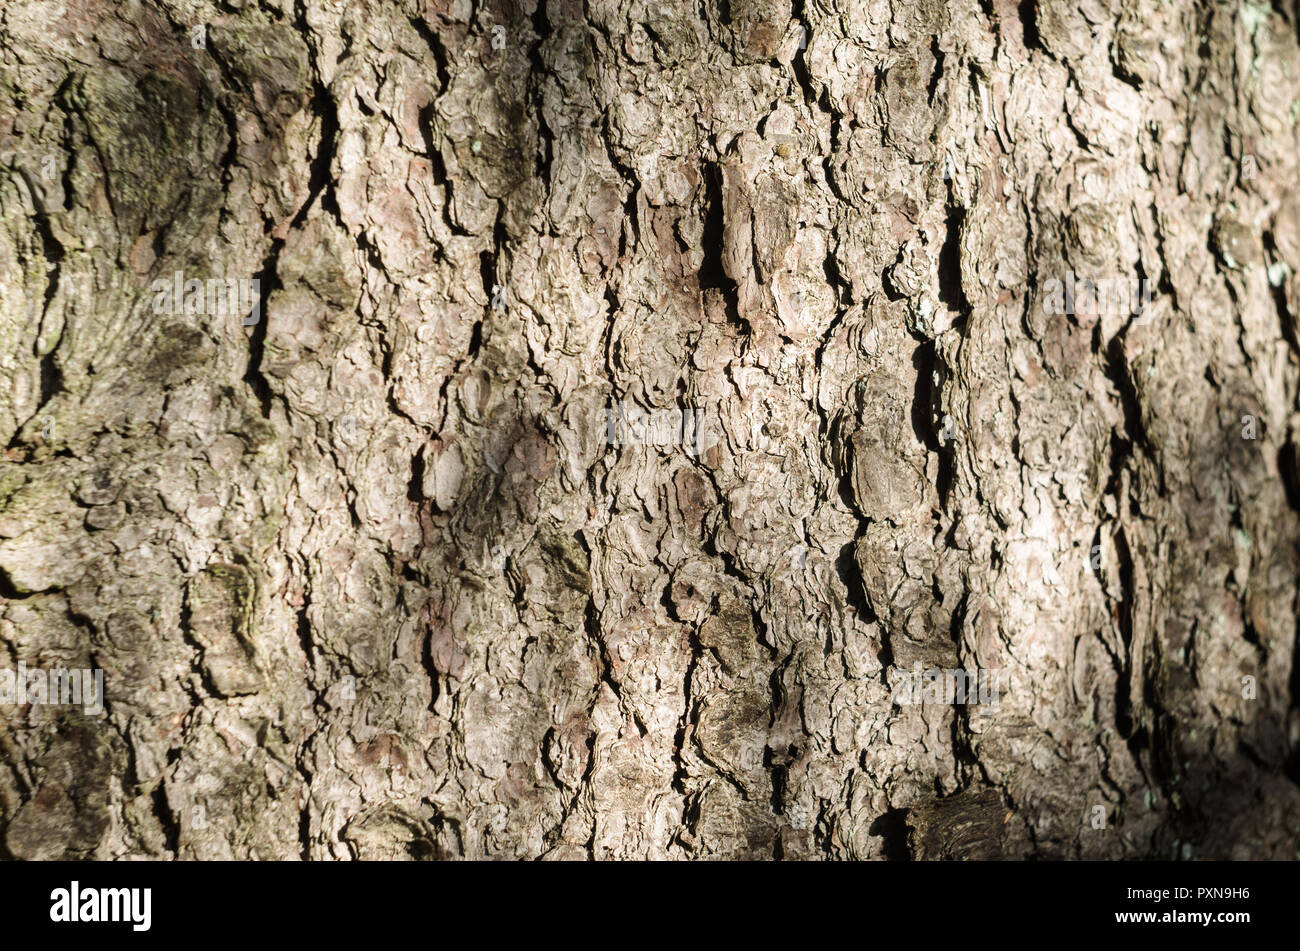 Texture Of The Bark Of Spruce. - Stock Image